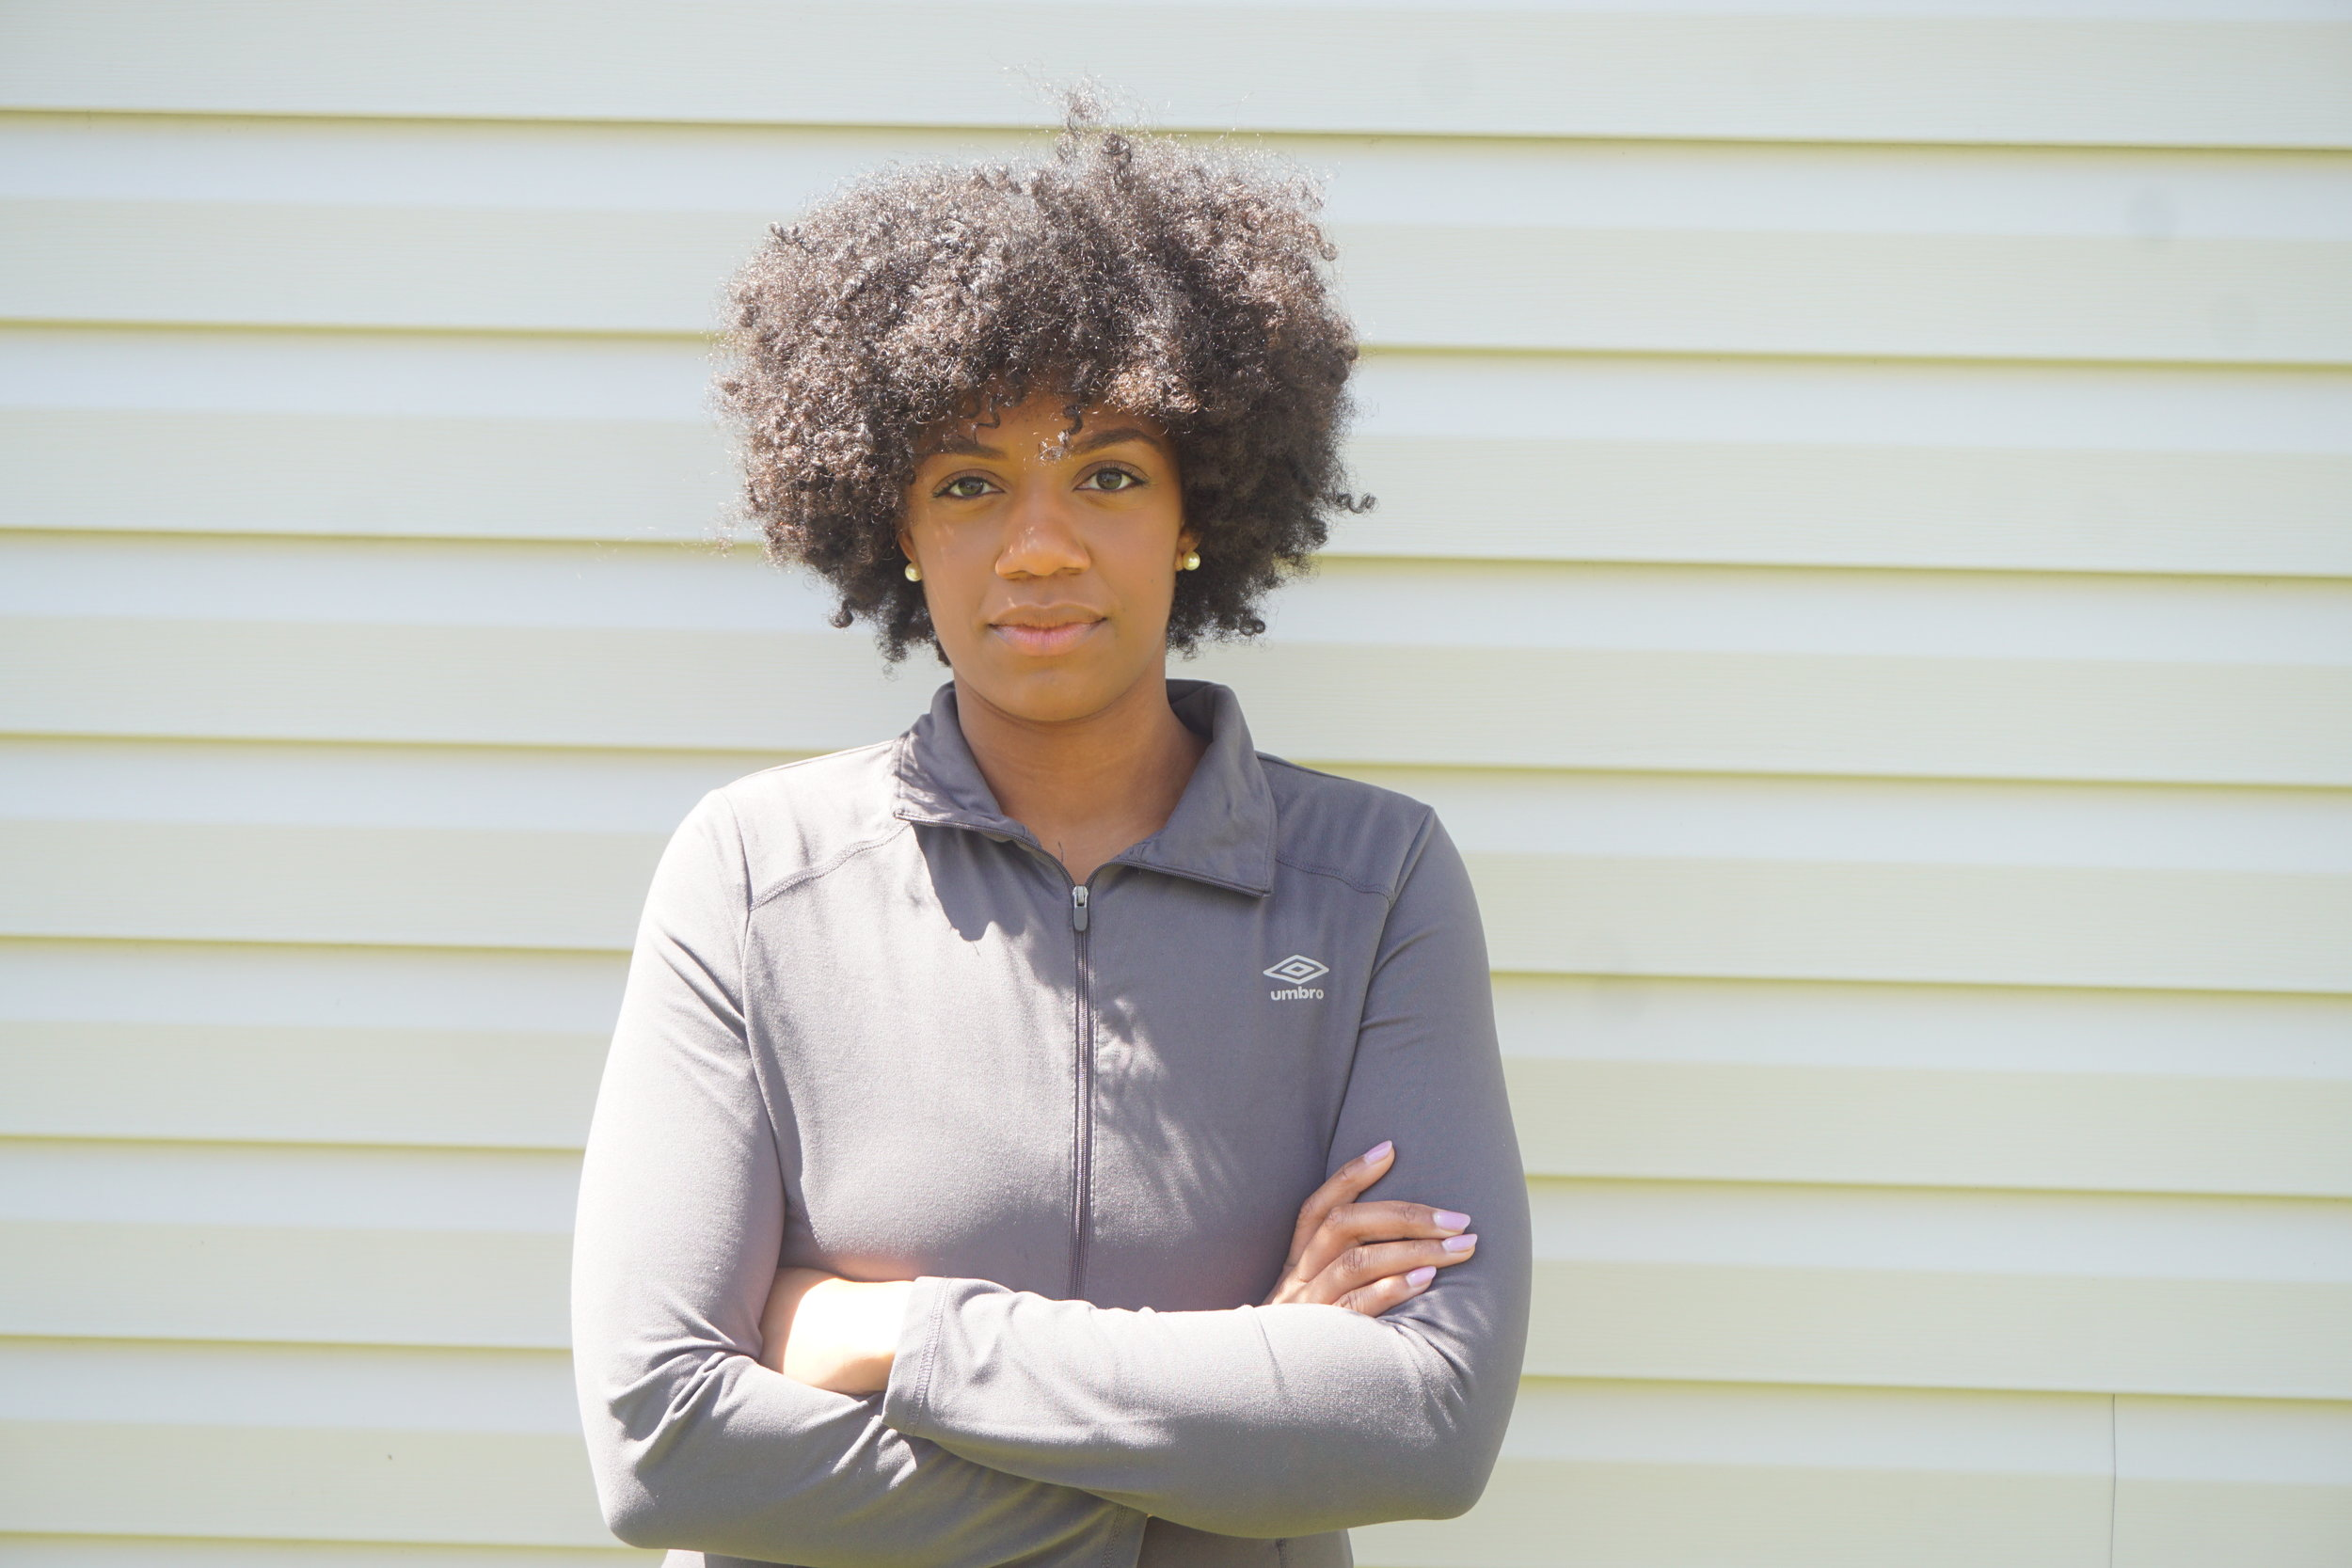 Sun's Out, Fro's Out - My go-to twist out is a three-strand twist out. I like to rock my 'fro after a fresh twist out. You can also wear a headband to pull your hair back a bit and keep it out of your face during runs.